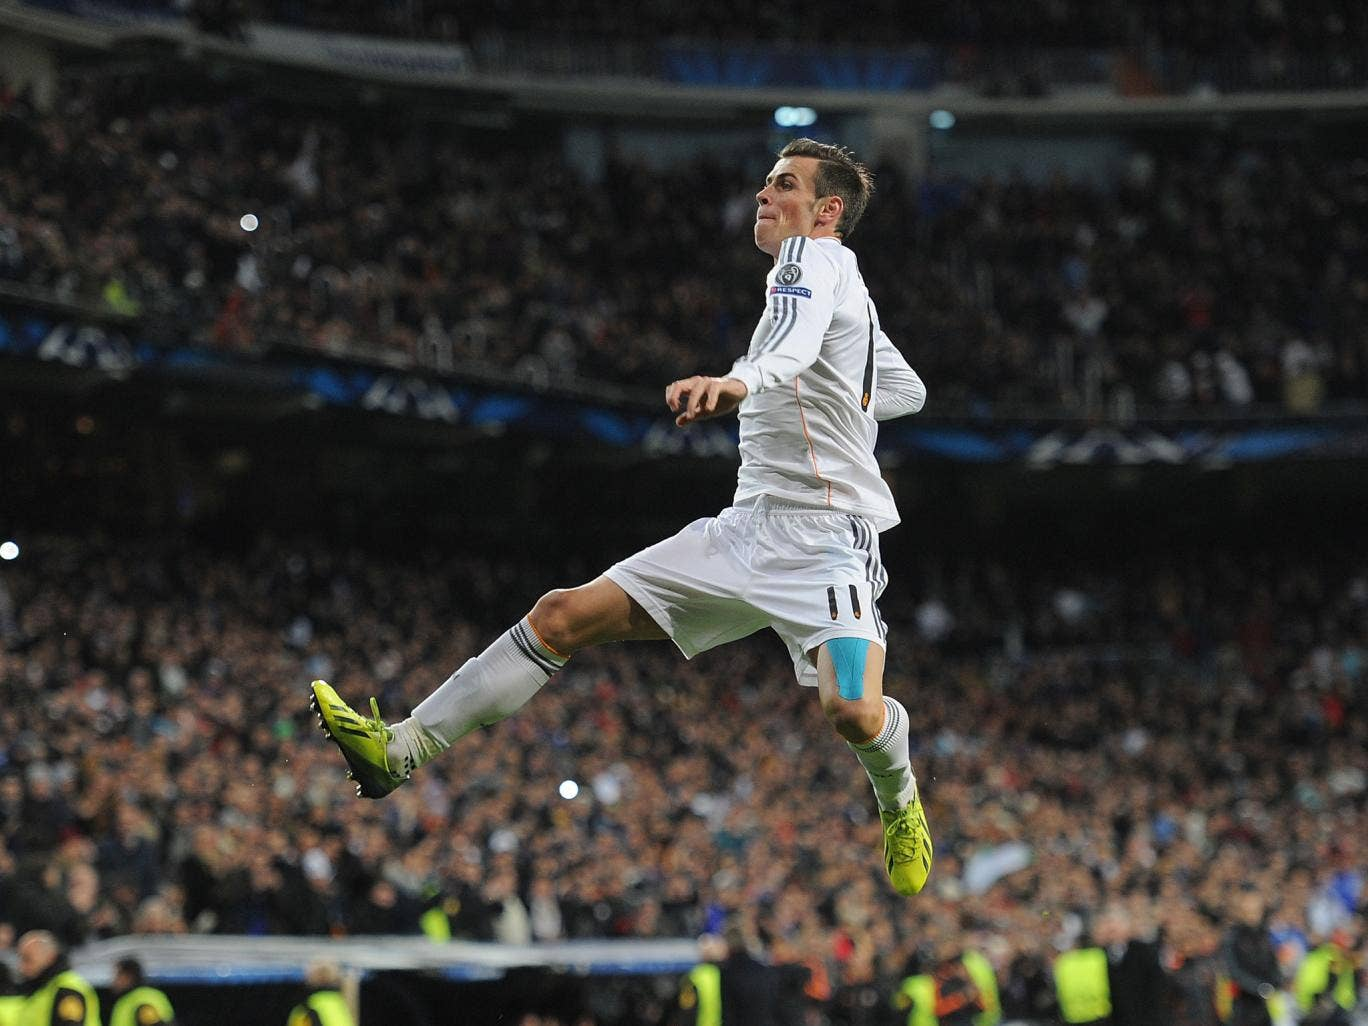 Gareth Bale celebrates his free-kick in the 4-1 win over Galatasaray on Wednesday